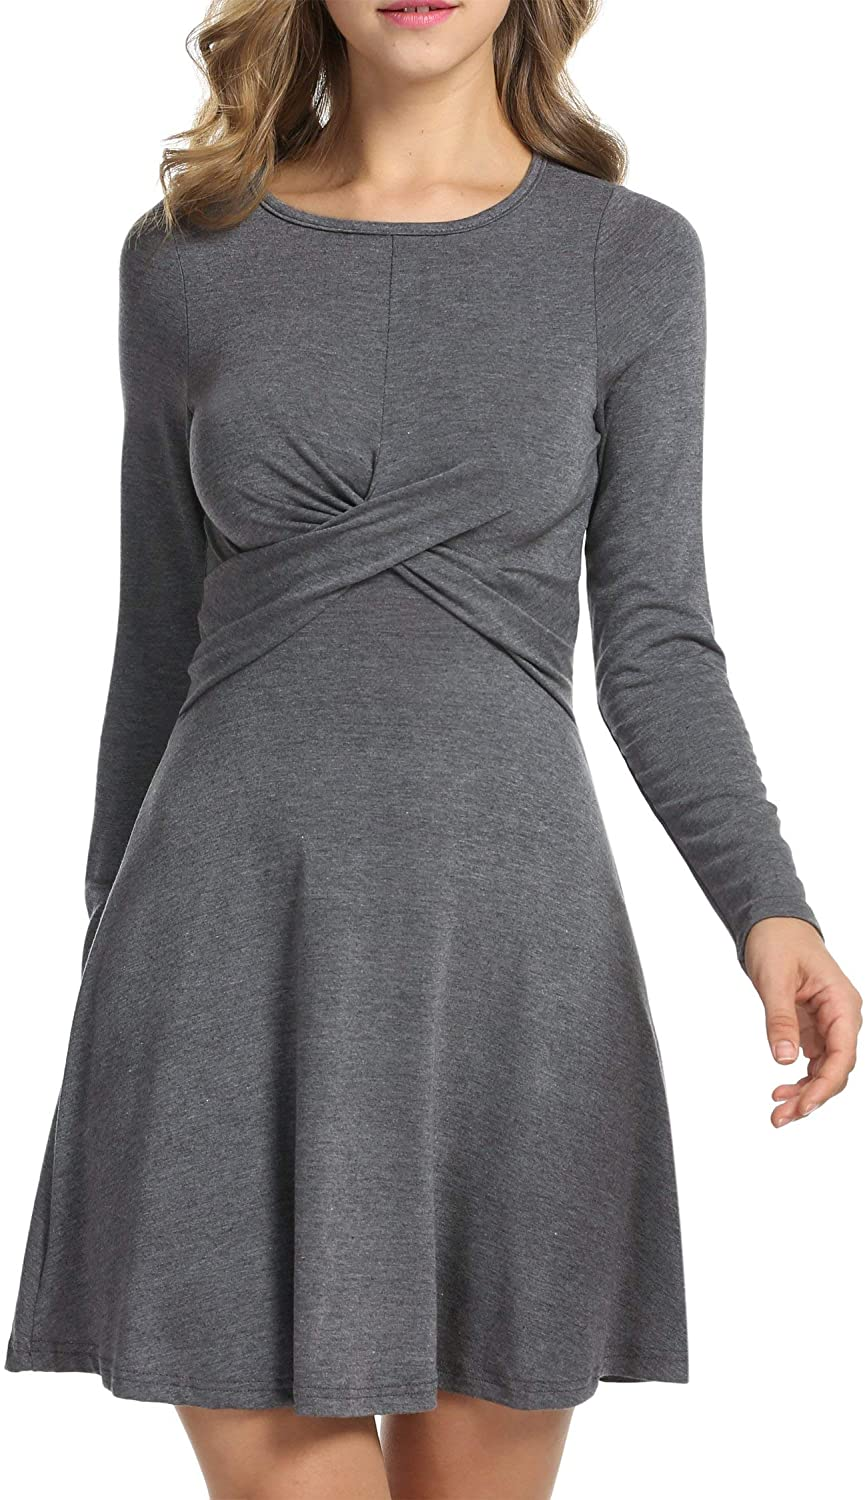 Hotouch Womens Dress Long Sleeve Cocktail Casual Swing Skater T Shirt Dresses